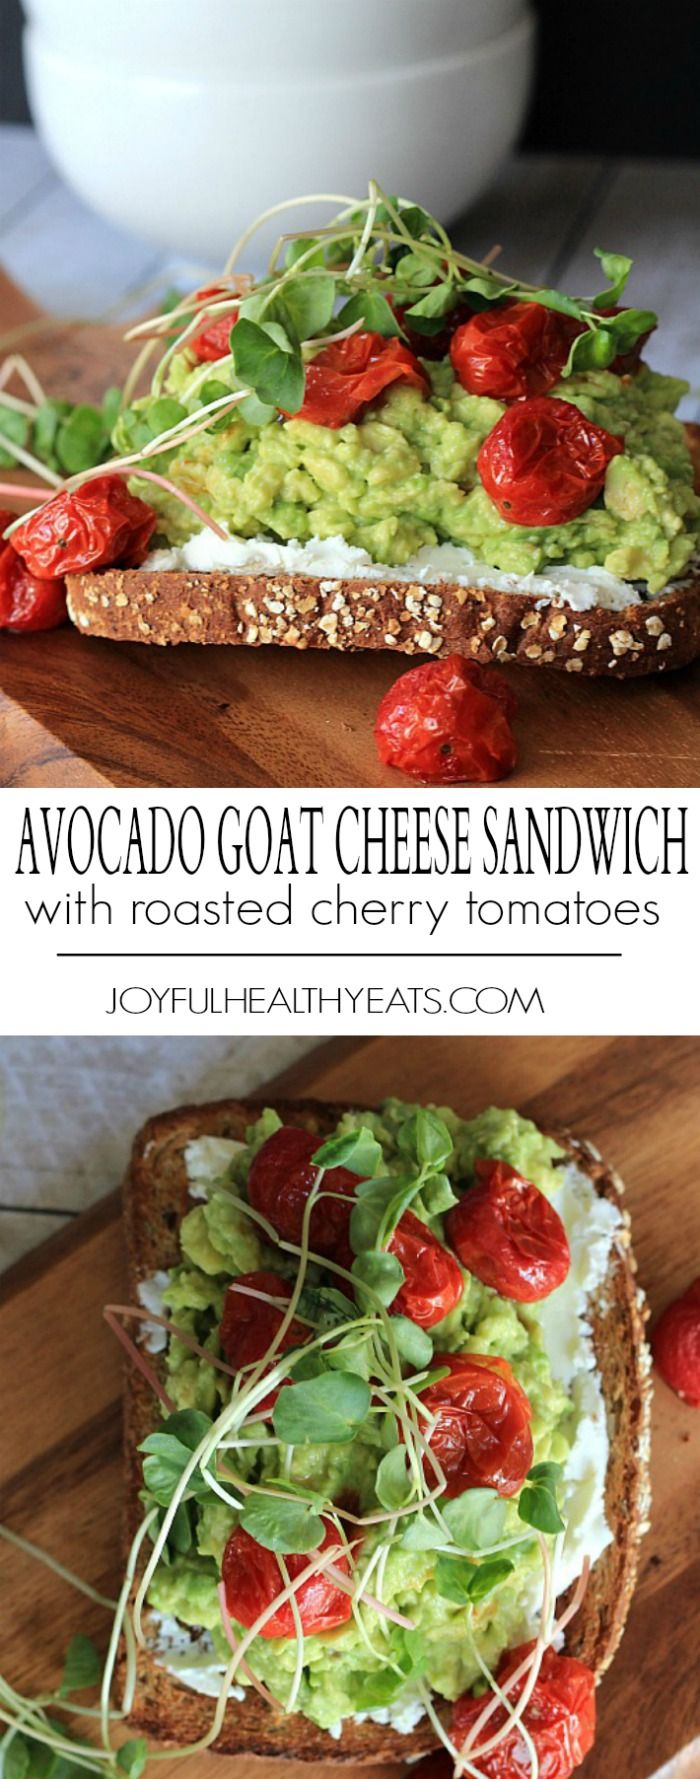 Mashed Avocado Goat Cheese Sandwich topped with roasted cherry tomatoes and sprouts! Healthy, filled with good fats, perfect for a quick lunch recipe!